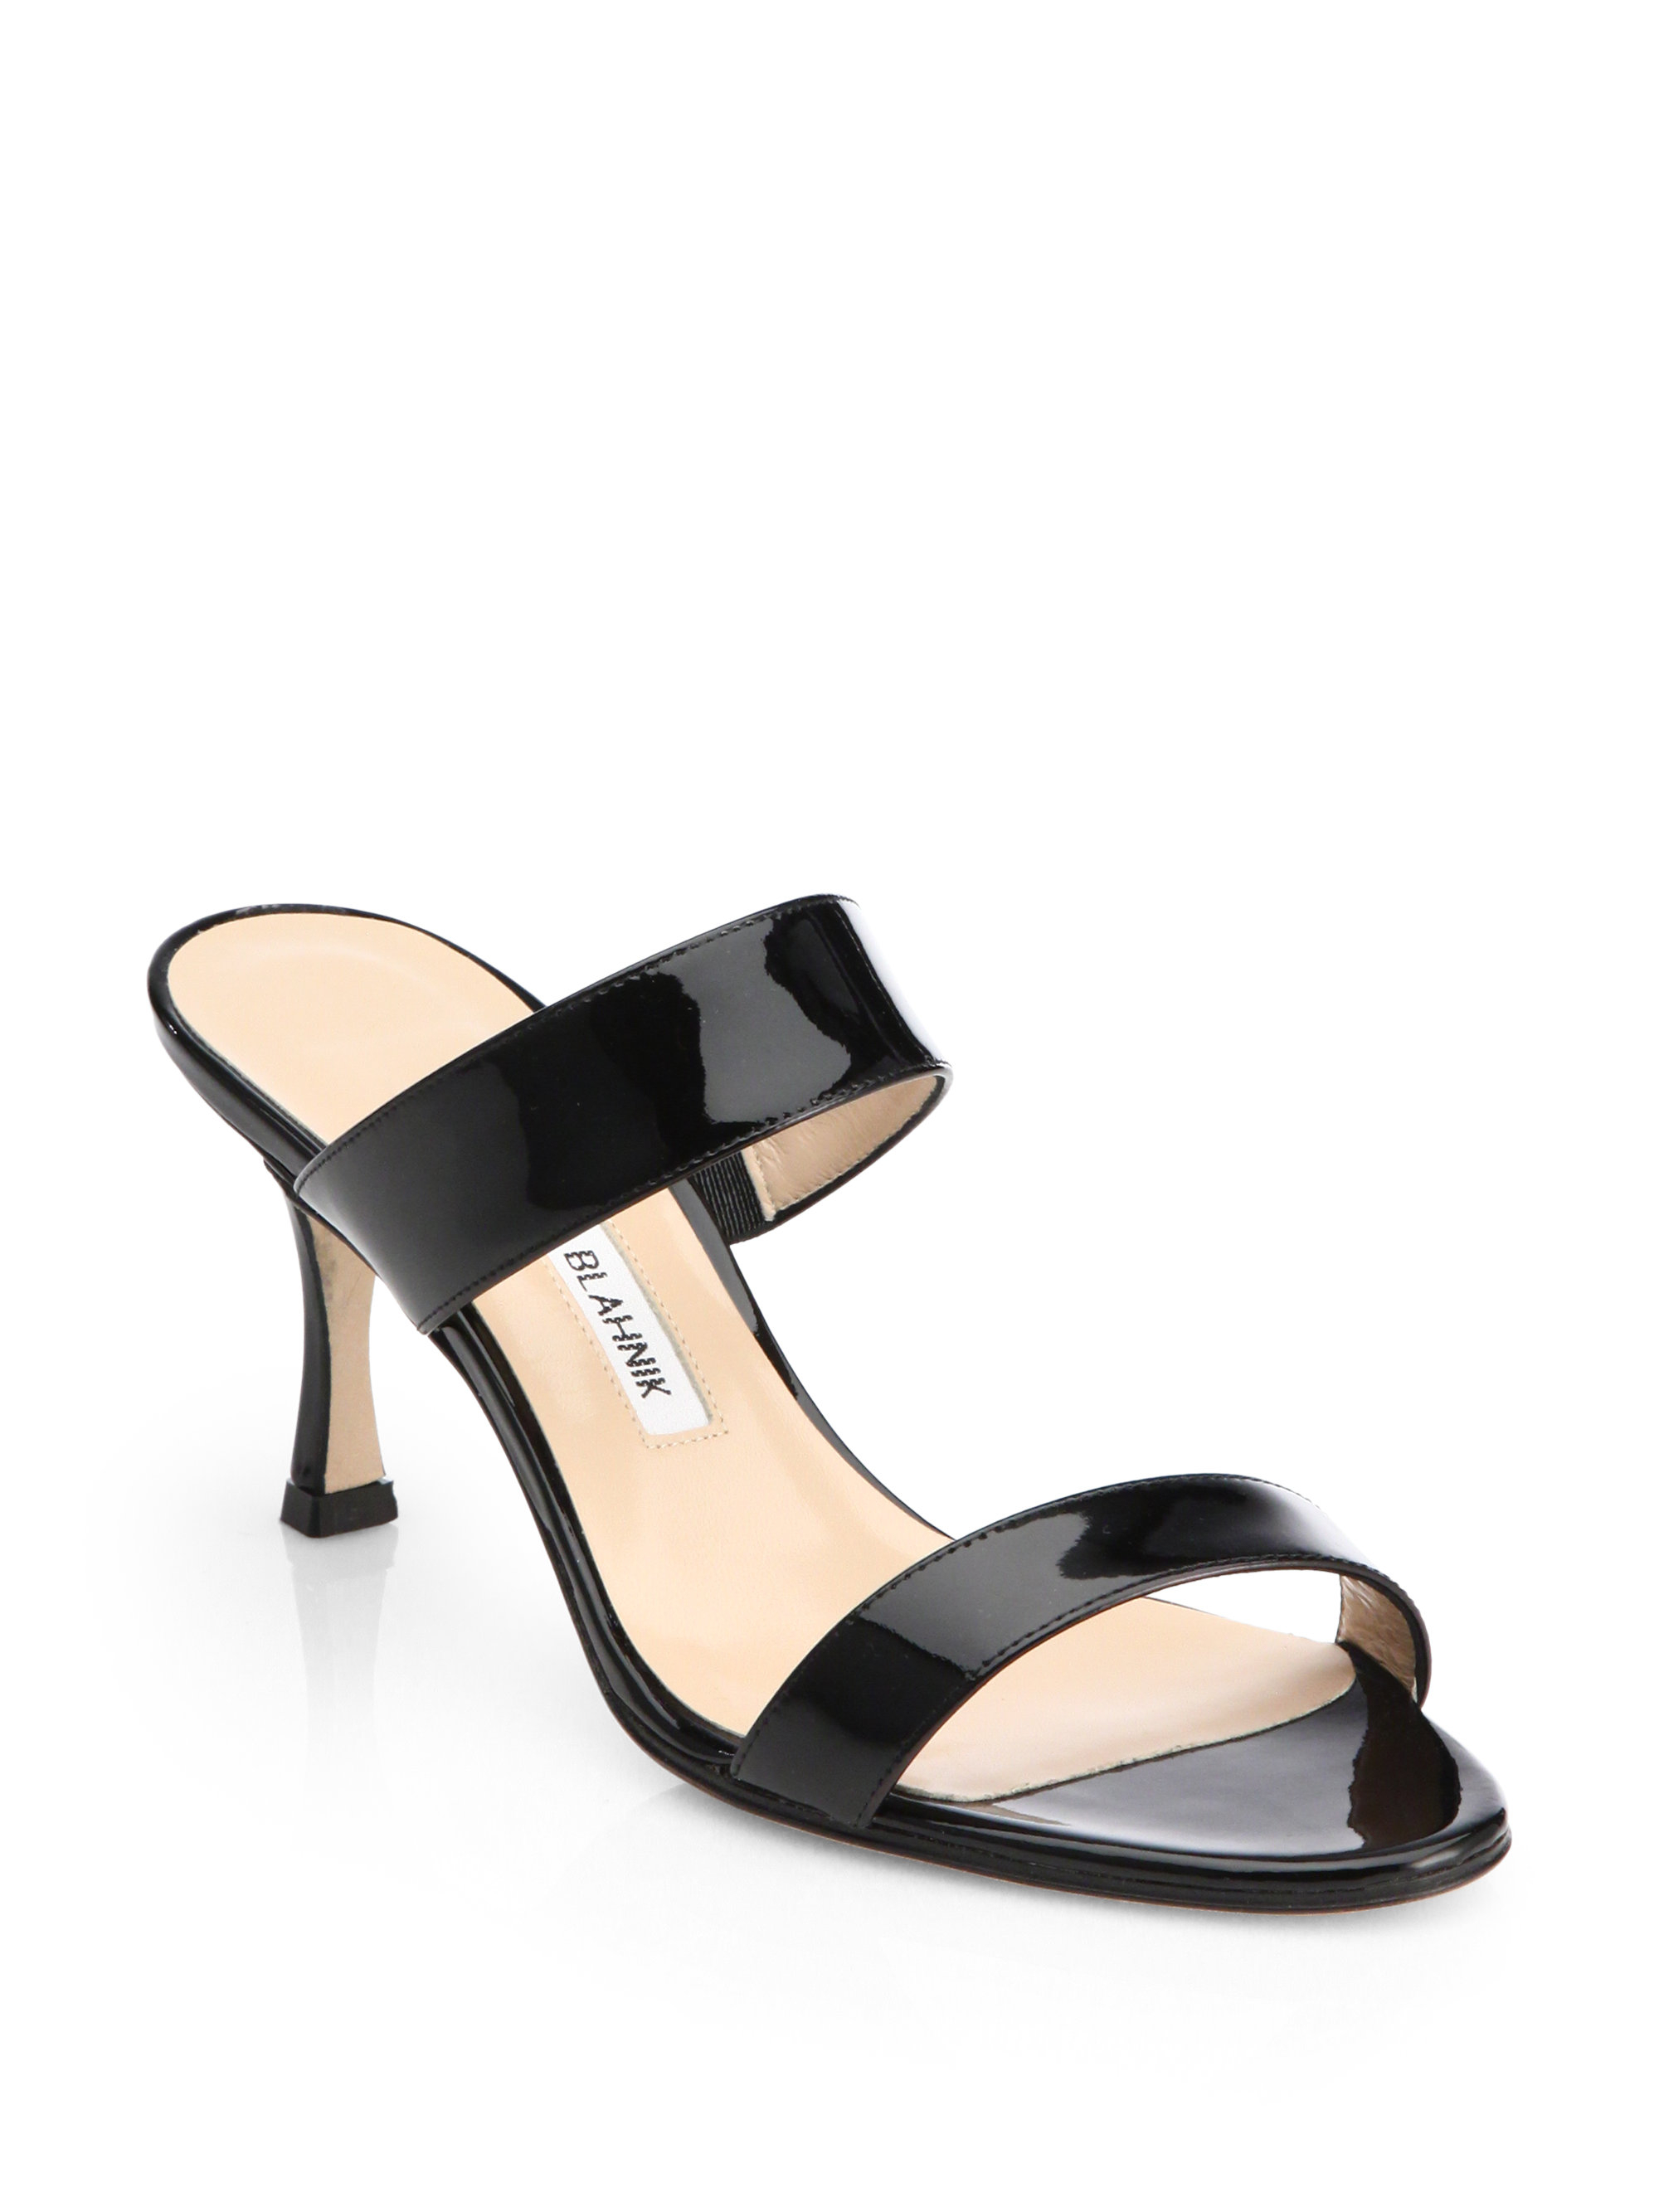 Manolo Blahnik Patent Leather Double Banded Sandals In